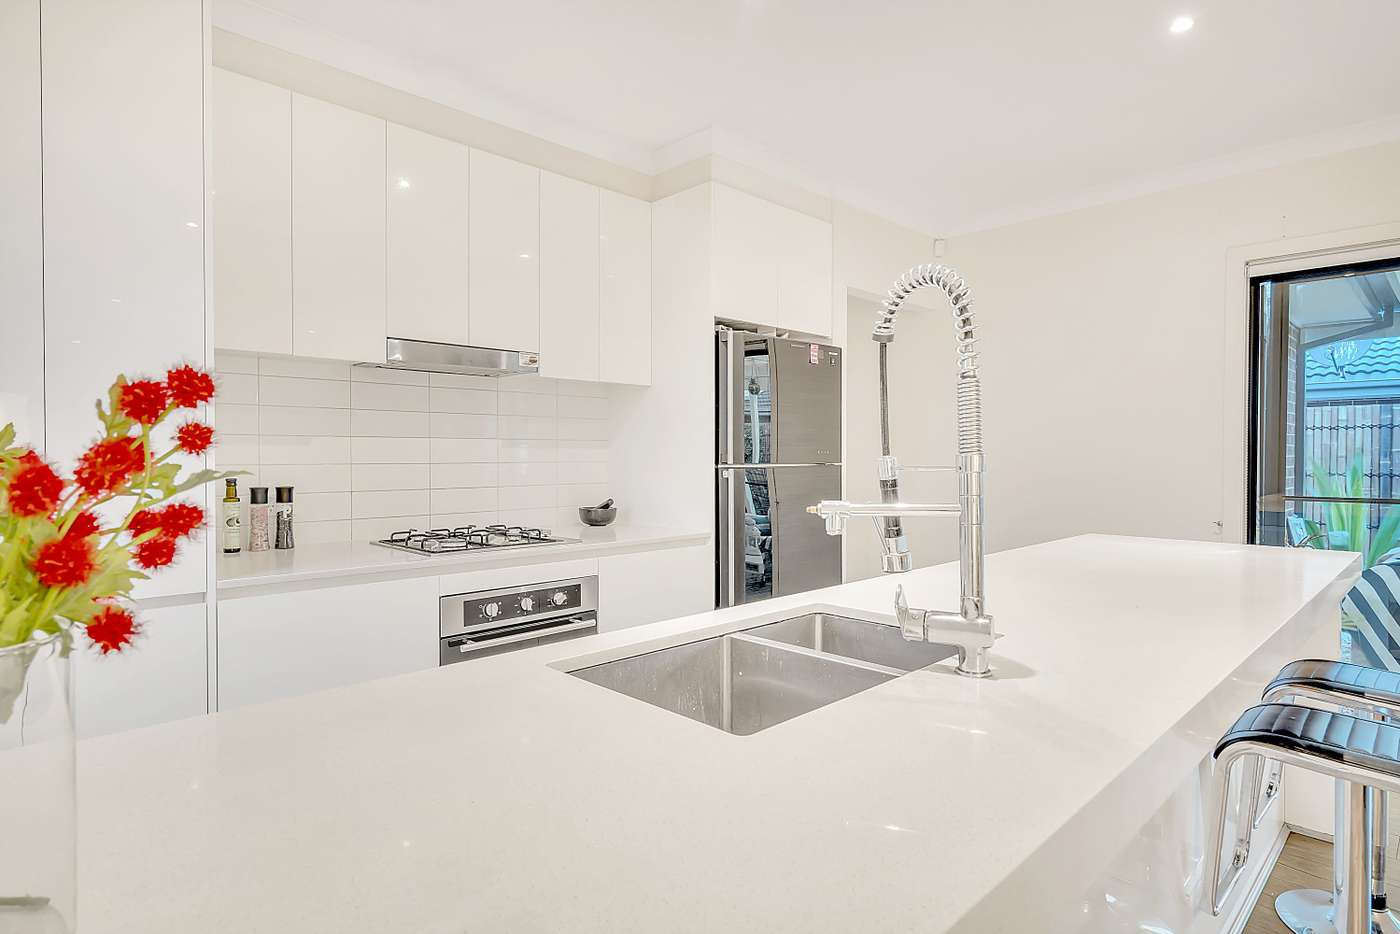 Seventh view of Homely house listing, 21 Cavalier Drive, Craigieburn VIC 3064